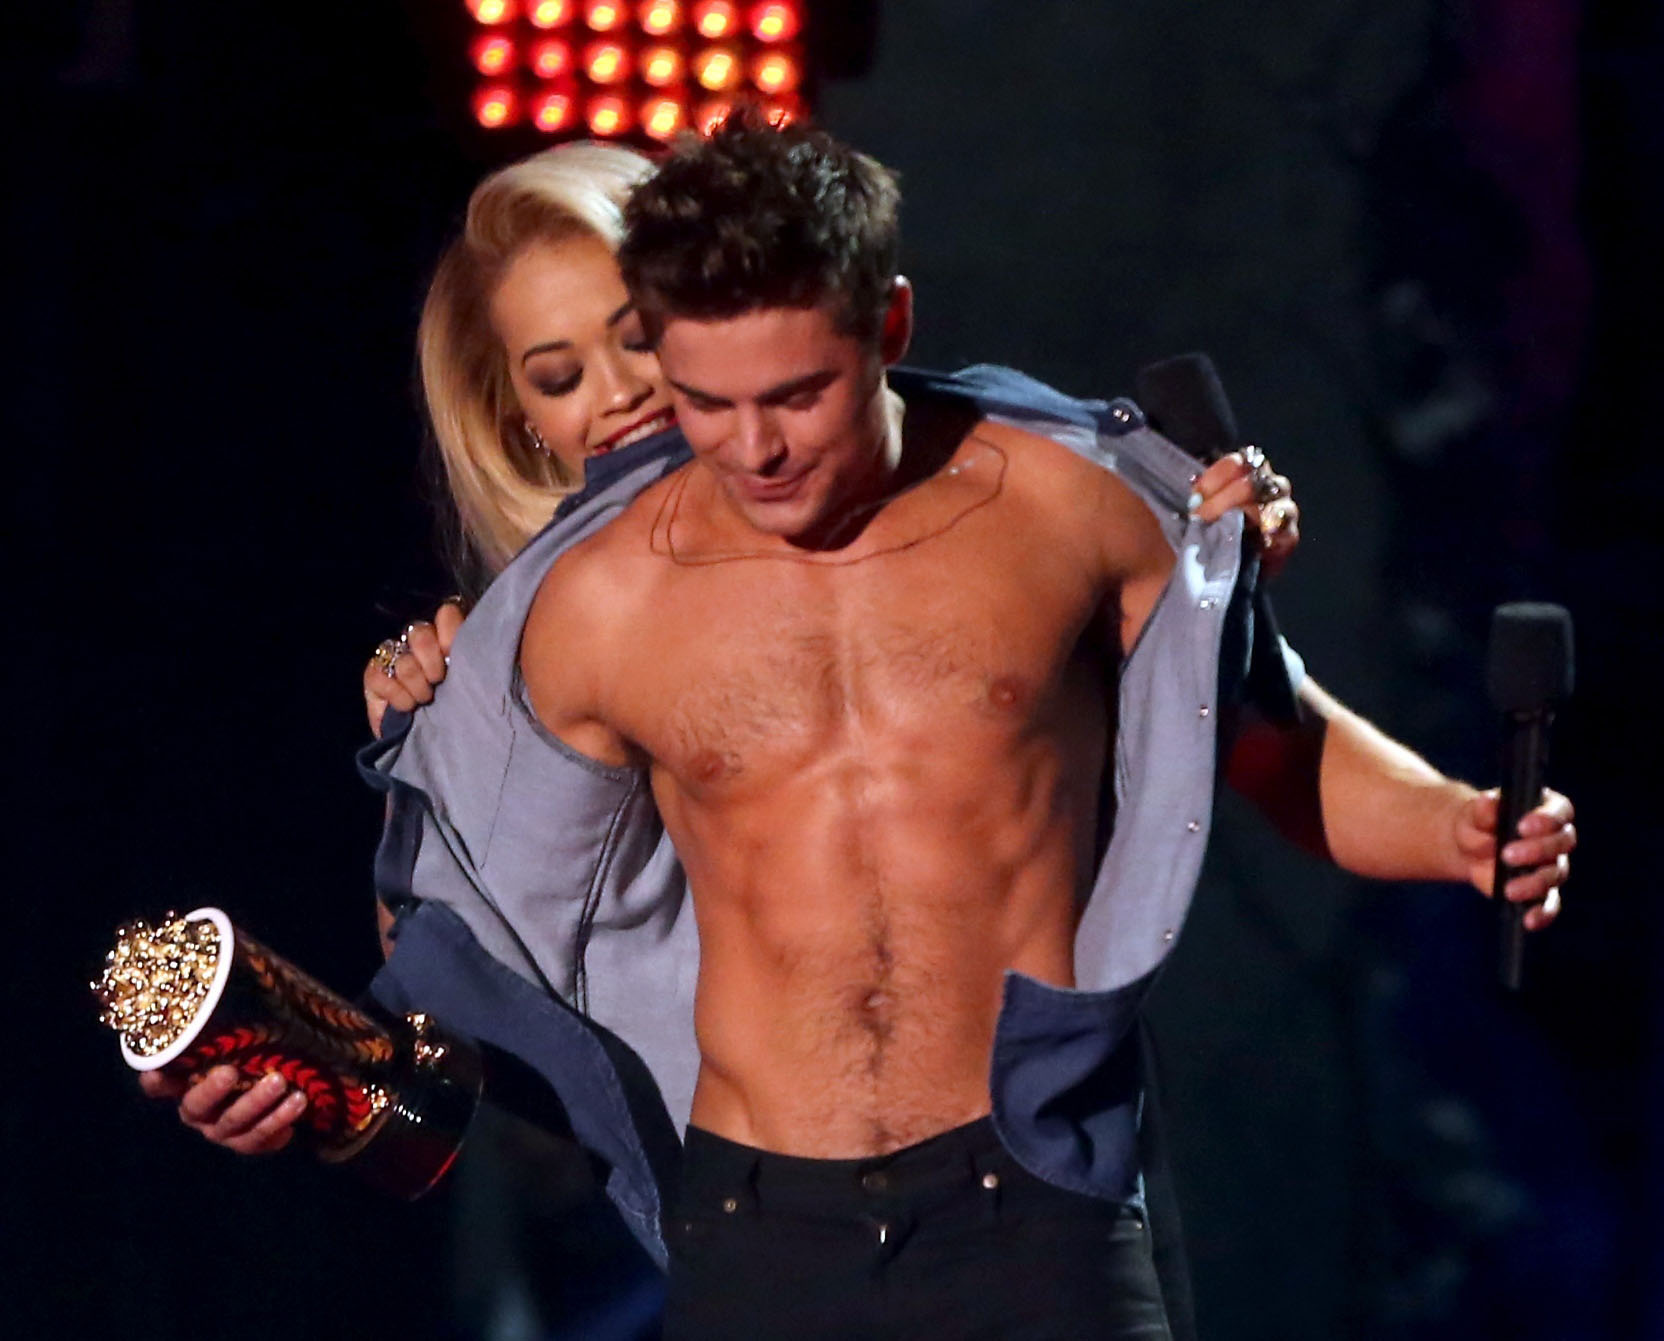 MTV Movie Awards 2014: Who won what? The winners in full